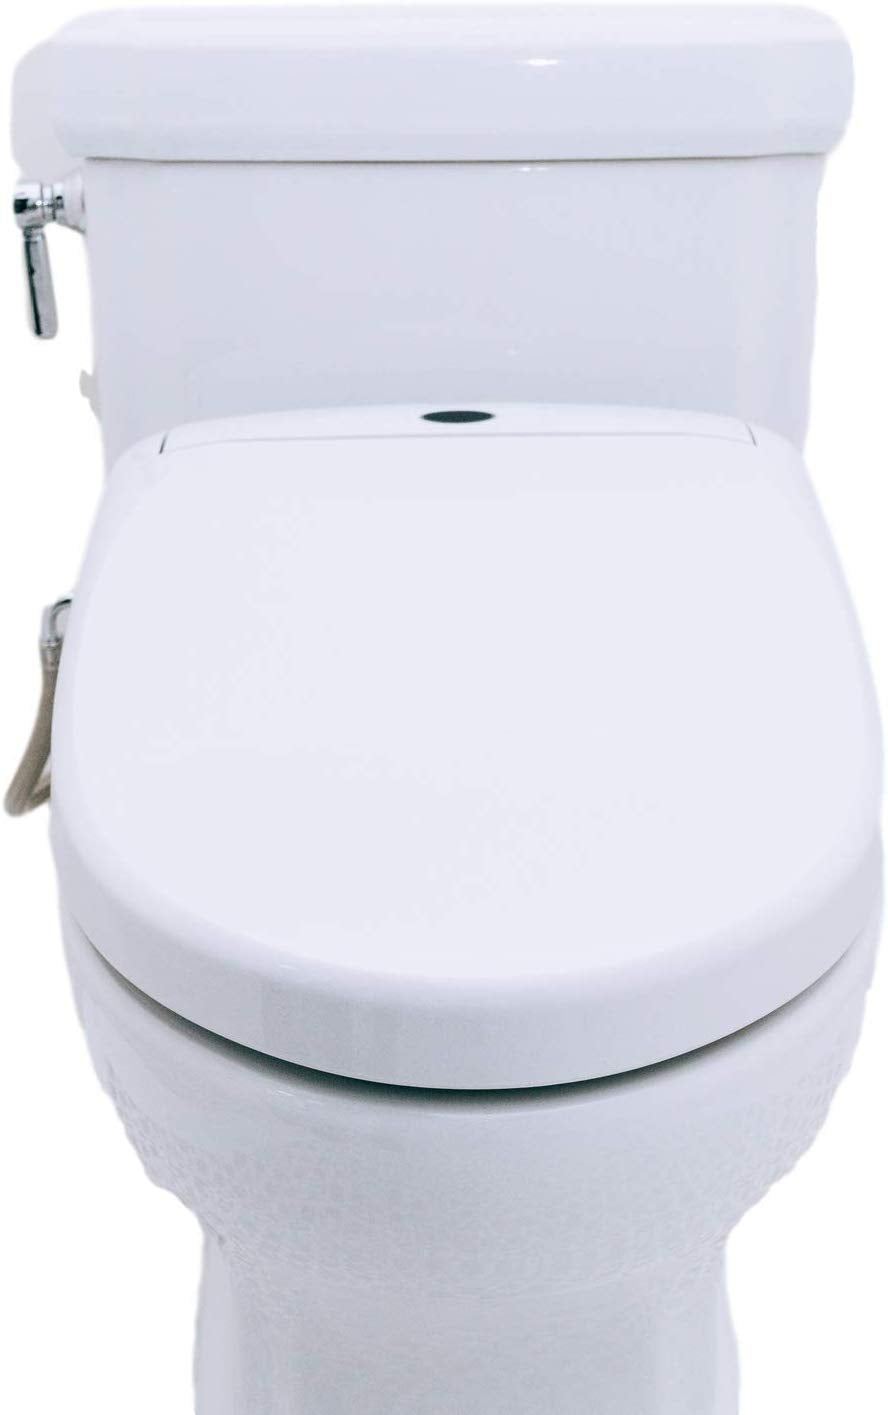 front of installed bidet seat